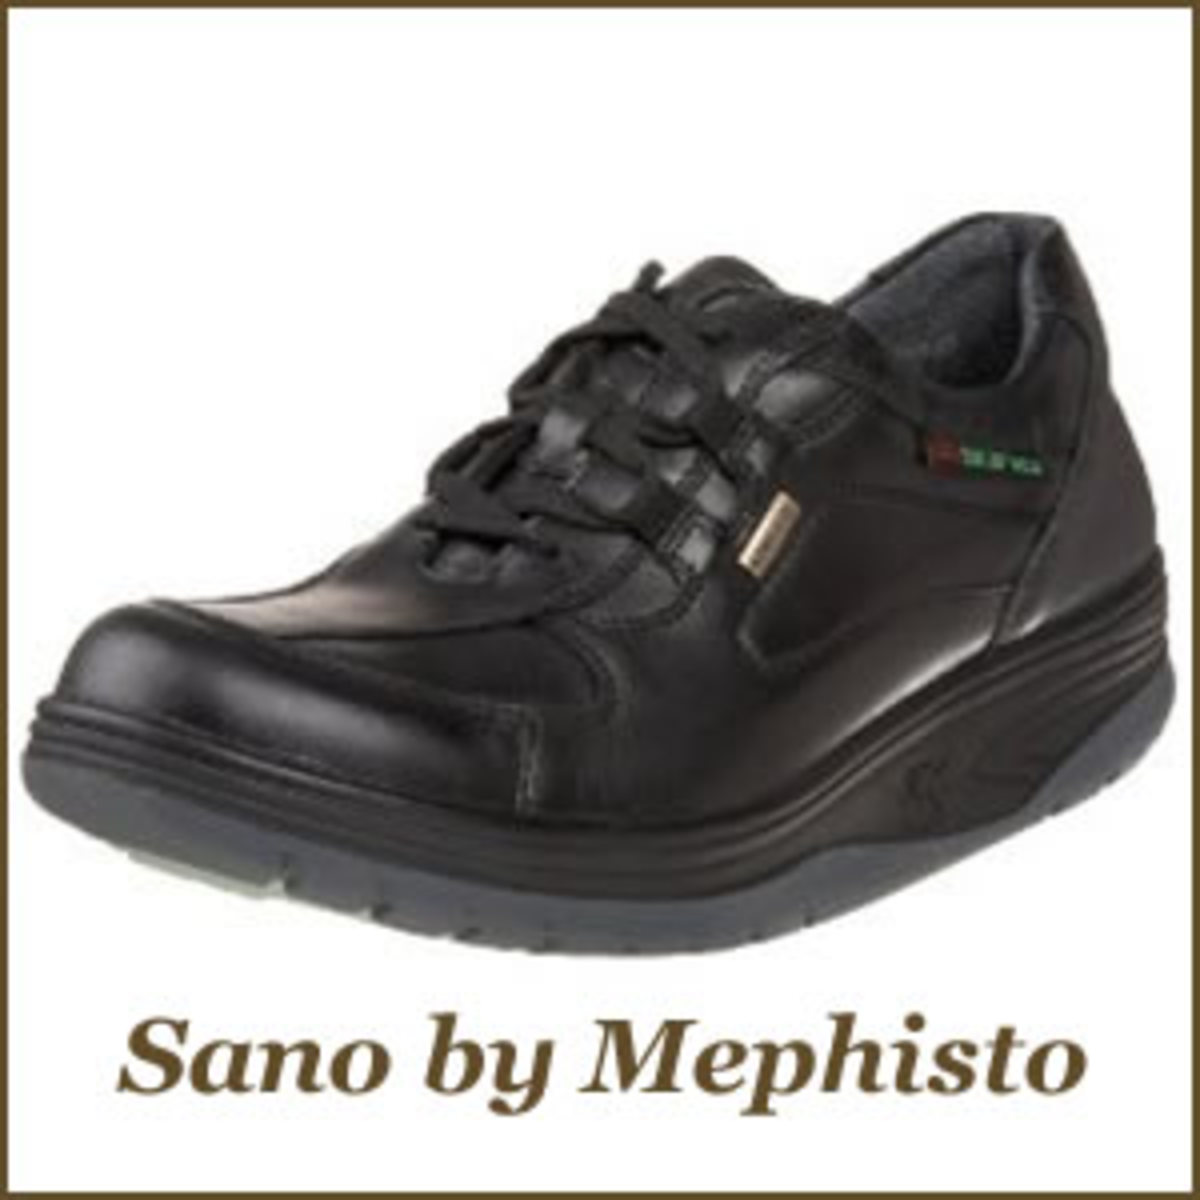 Sano Mephisto waterproof walking shoes